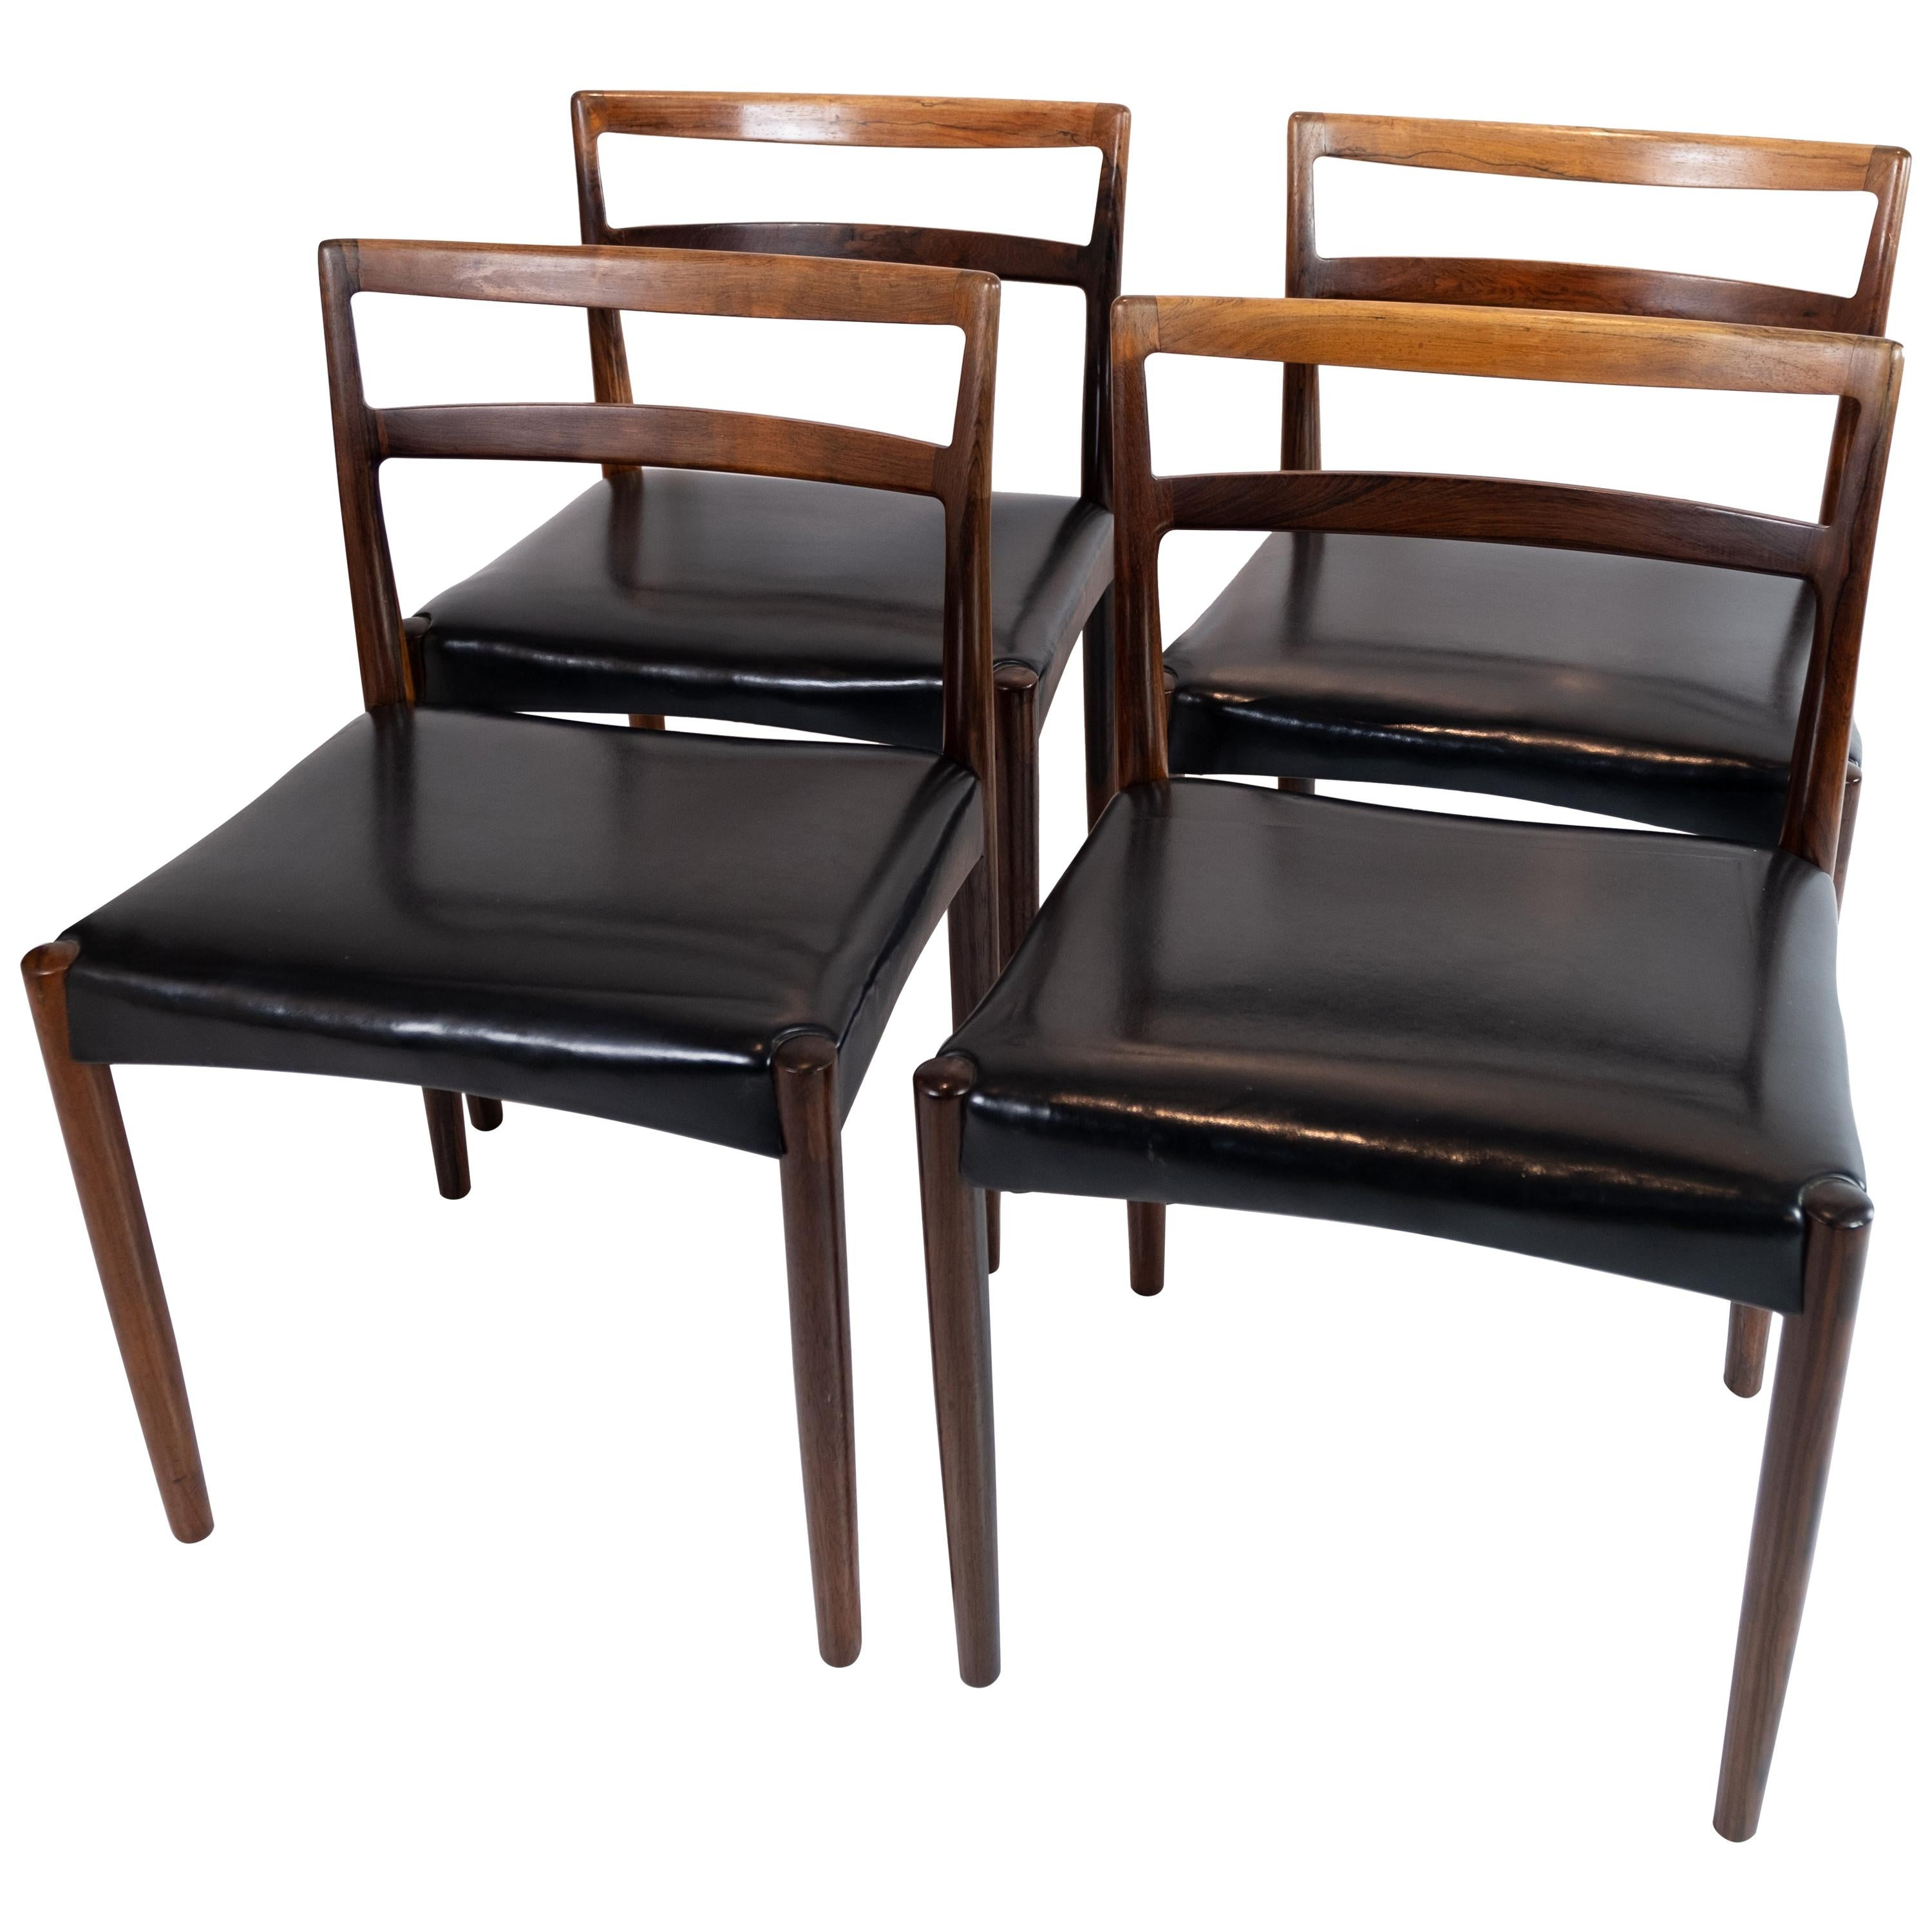 Set of Four Dining Room Chairs in Rosewood and Black Leather of Danish Design